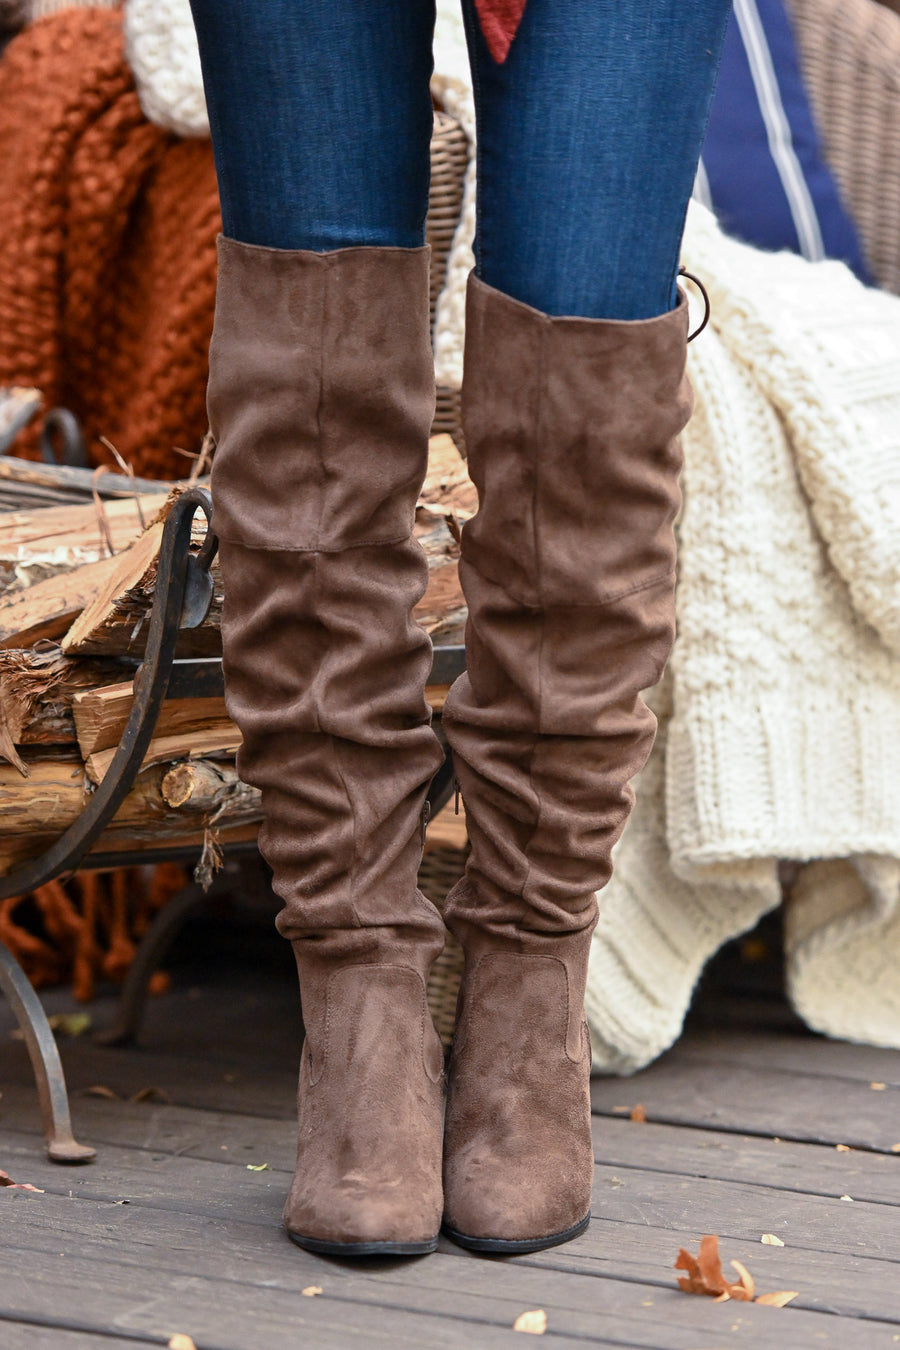 Follow My Lead Over-the-Knee Boots - Chocolate knee high suede boots, Closet Candy Boutique 1